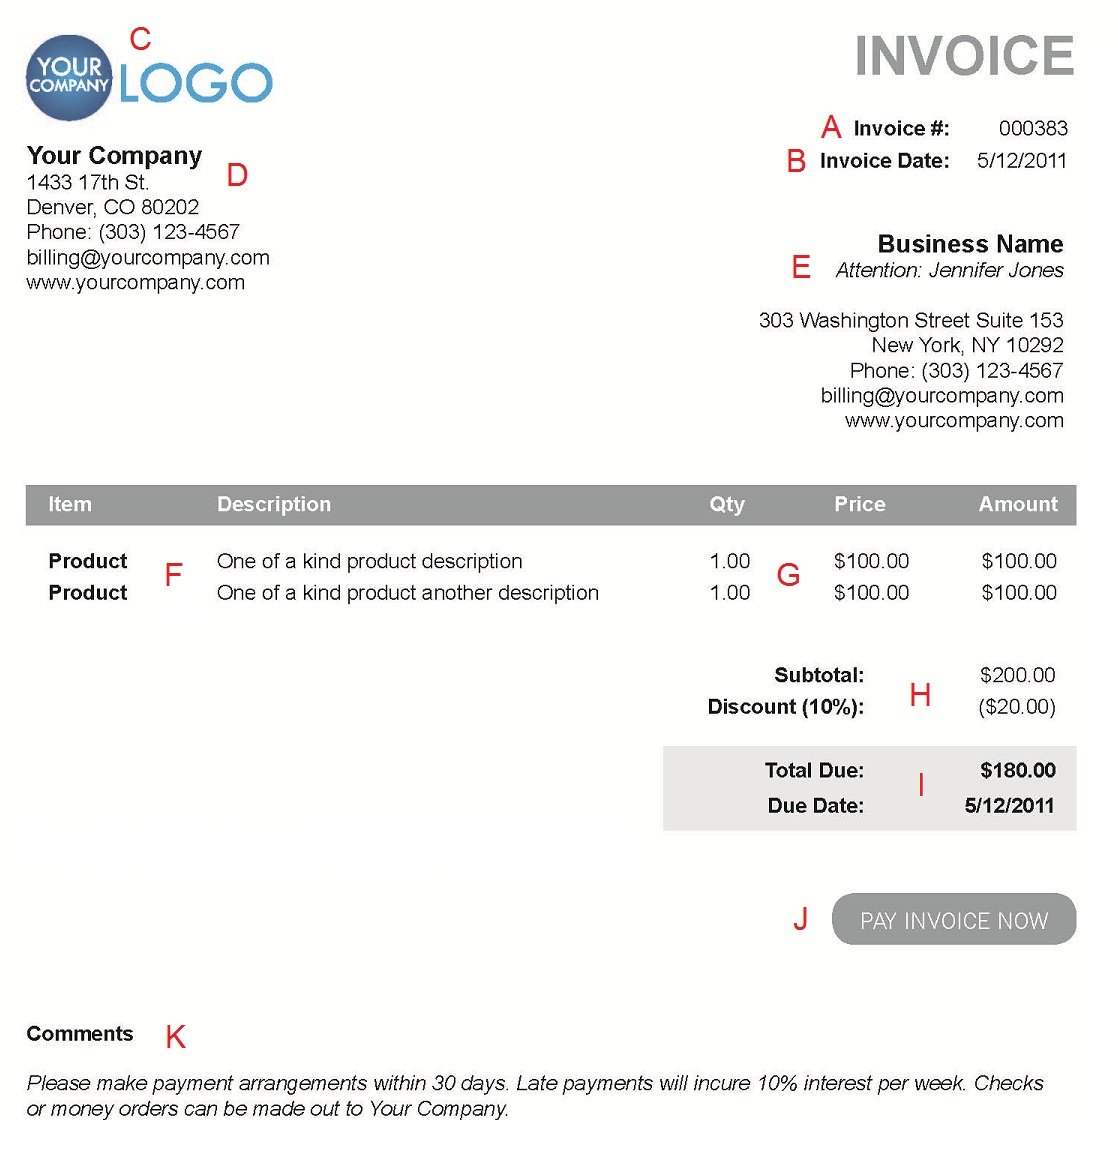 Usdgus  Winning The  Different Sections Of An Electronic Payment Invoice With Magnificent A  With Cute Abn Invoice Template Also Invoice Discounting Factoring In Addition Invoicing Procedure And What Is A Invoice Used For As Well As Credit Note Invoice Additionally Online Invoices Free Template From Paysimplecom With Usdgus  Magnificent The  Different Sections Of An Electronic Payment Invoice With Cute A  And Winning Abn Invoice Template Also Invoice Discounting Factoring In Addition Invoicing Procedure From Paysimplecom